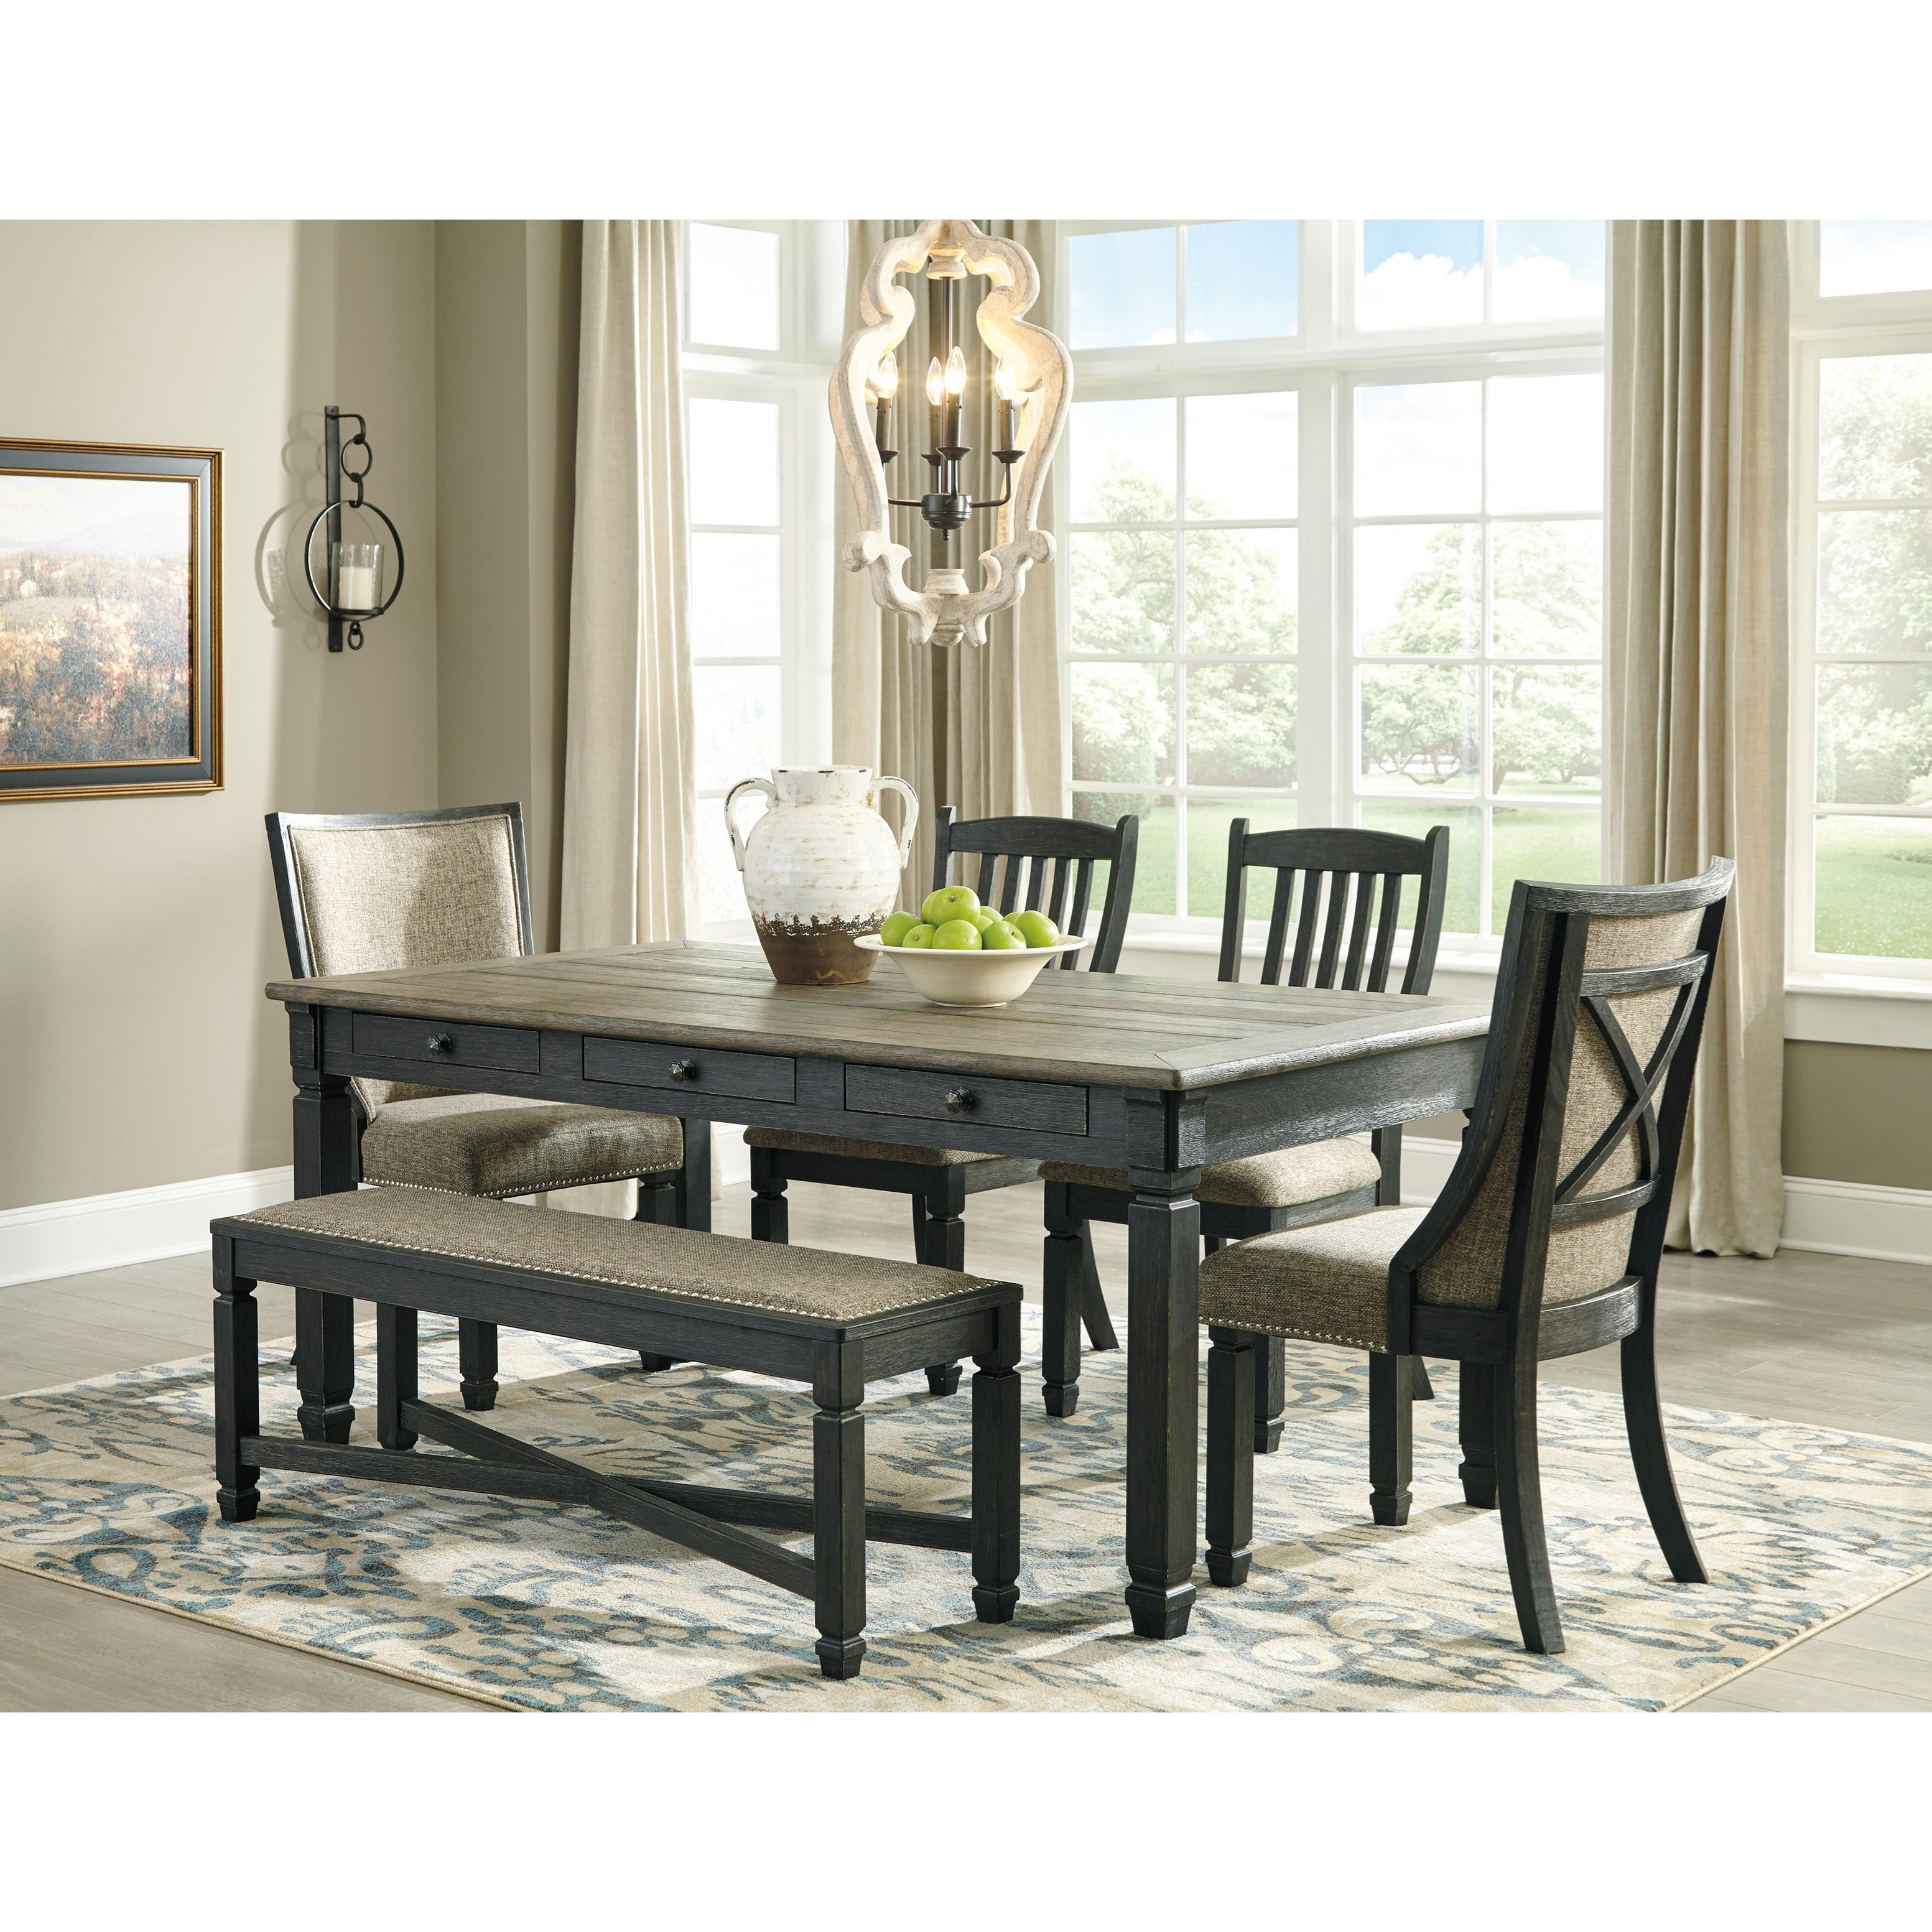 Tyler Creek 6-Piece Table and Chair Set by Signature Design by Ashley at Northeast Factory Direct